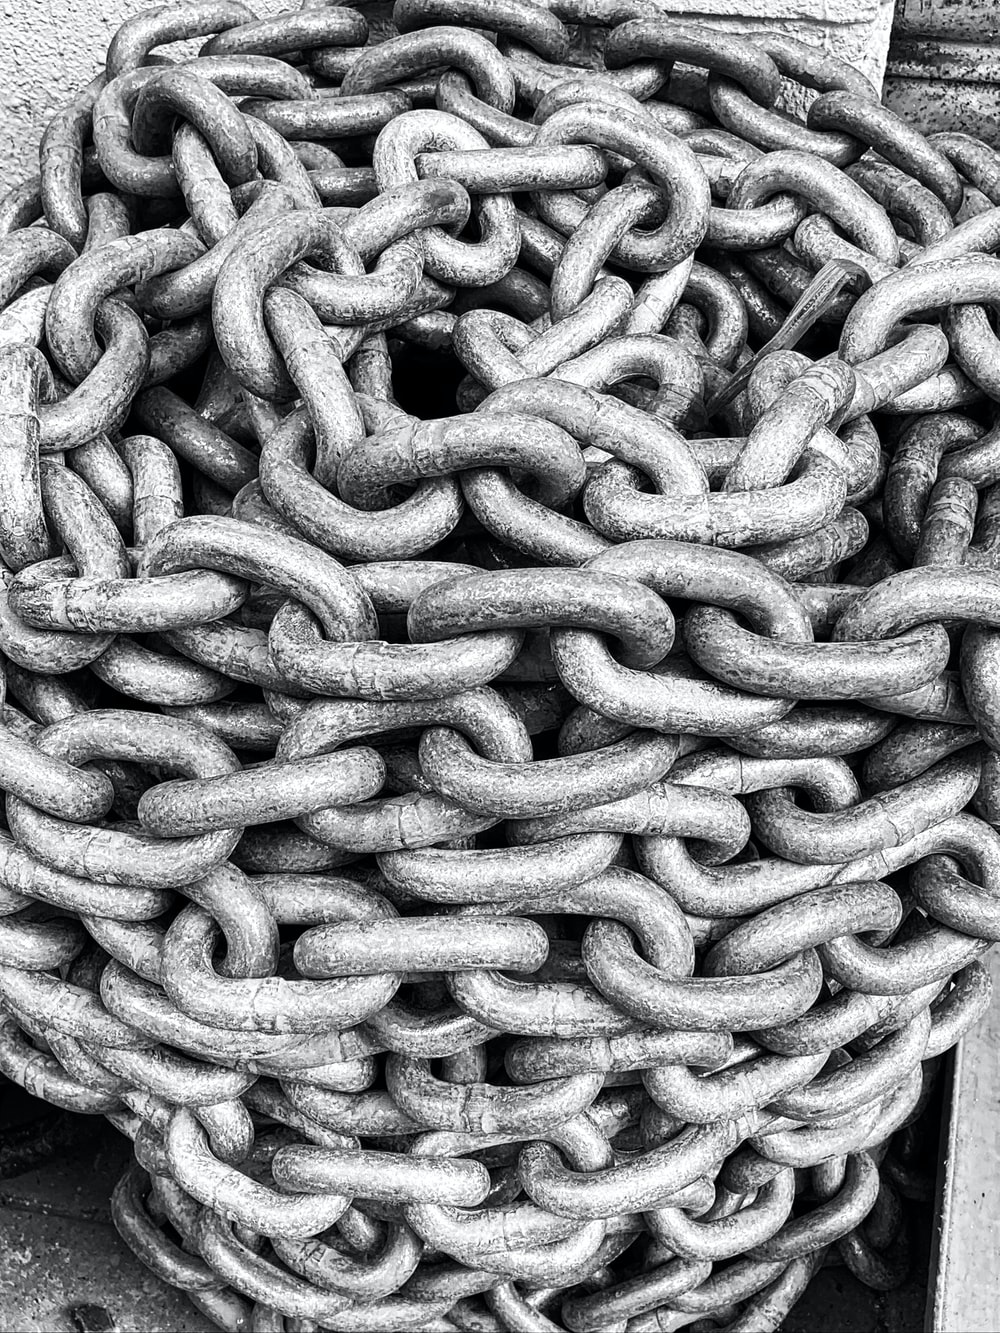 white and gray rope on black textile